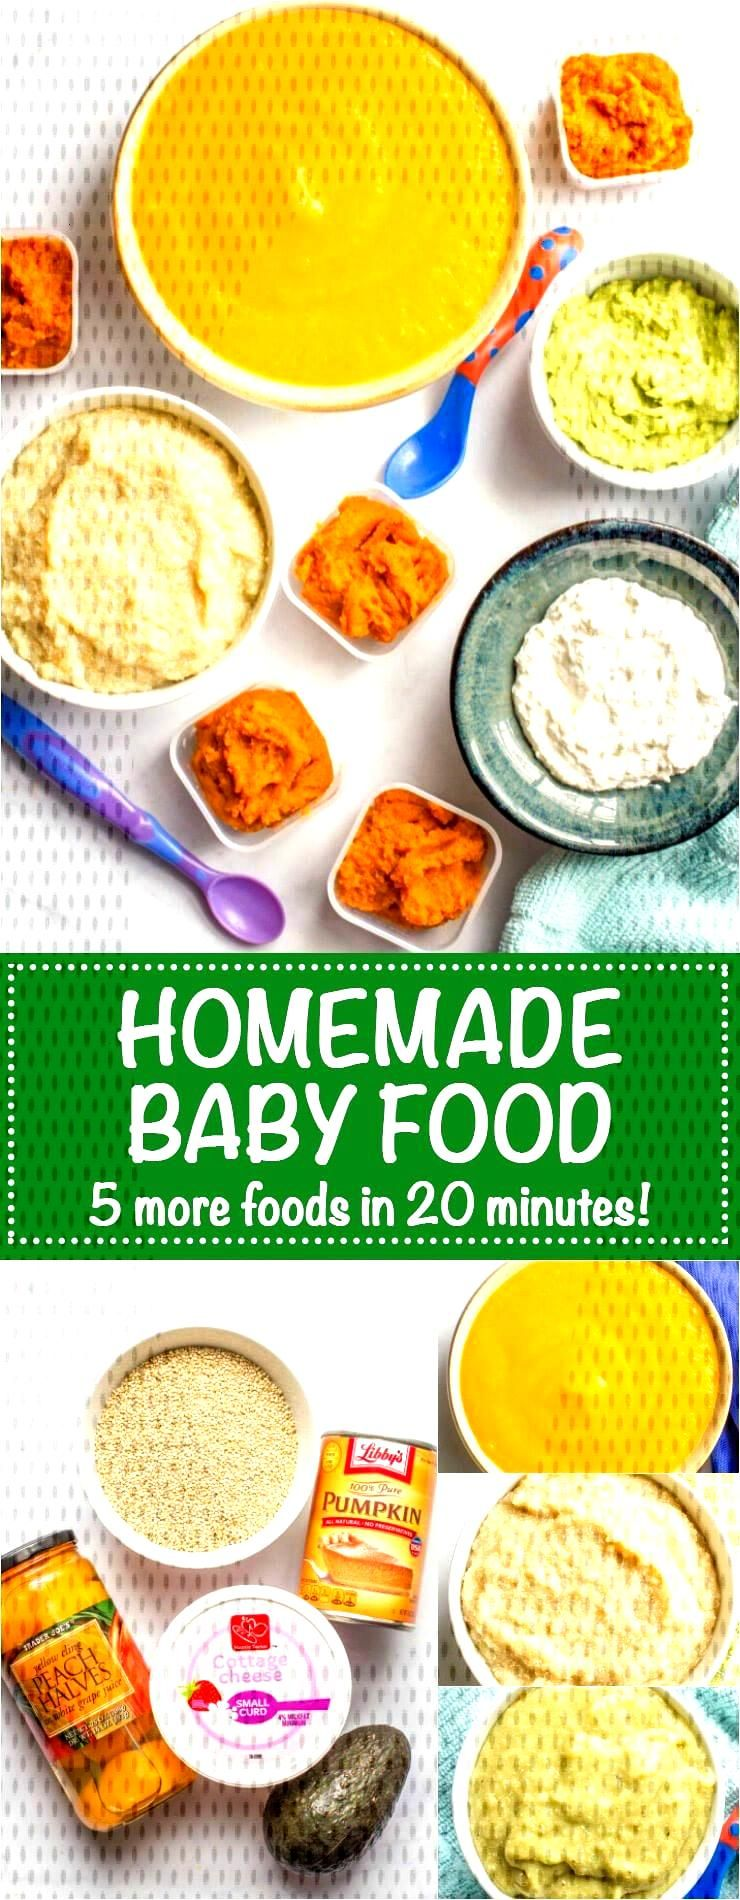 Homemade baby food: Quinoa, peaches, avocado, pumpkin and cottage cheese - Family Food on the Table